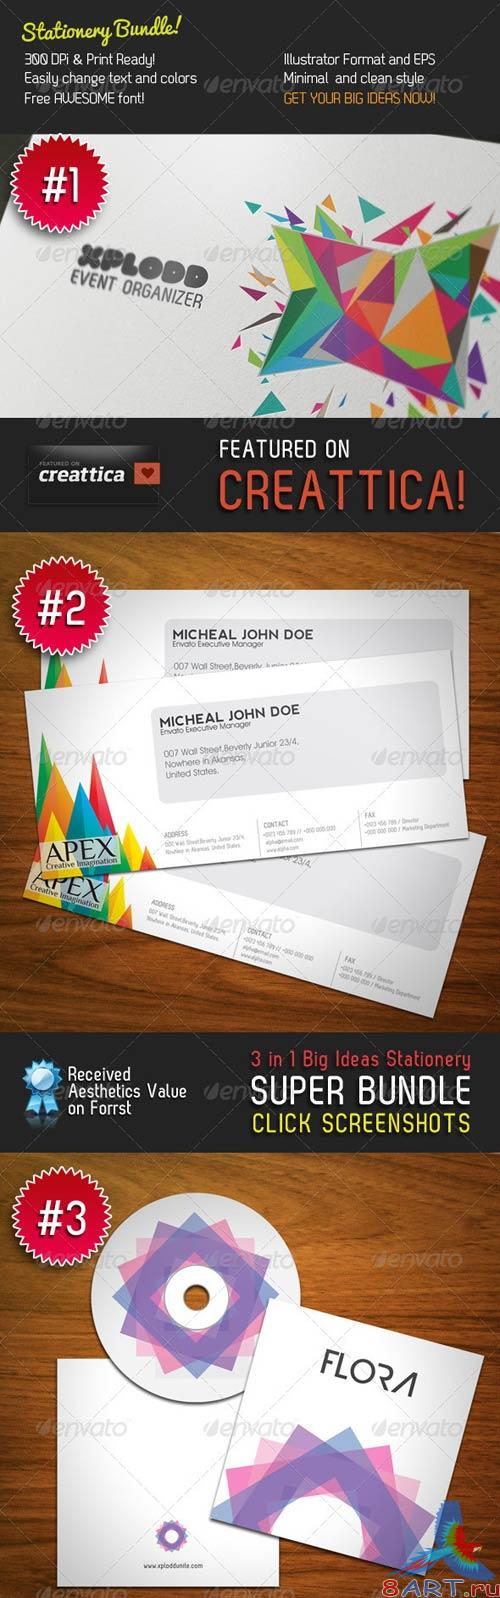 GraphicRiver Big Ideas Stationery 3 in 1 Bundle